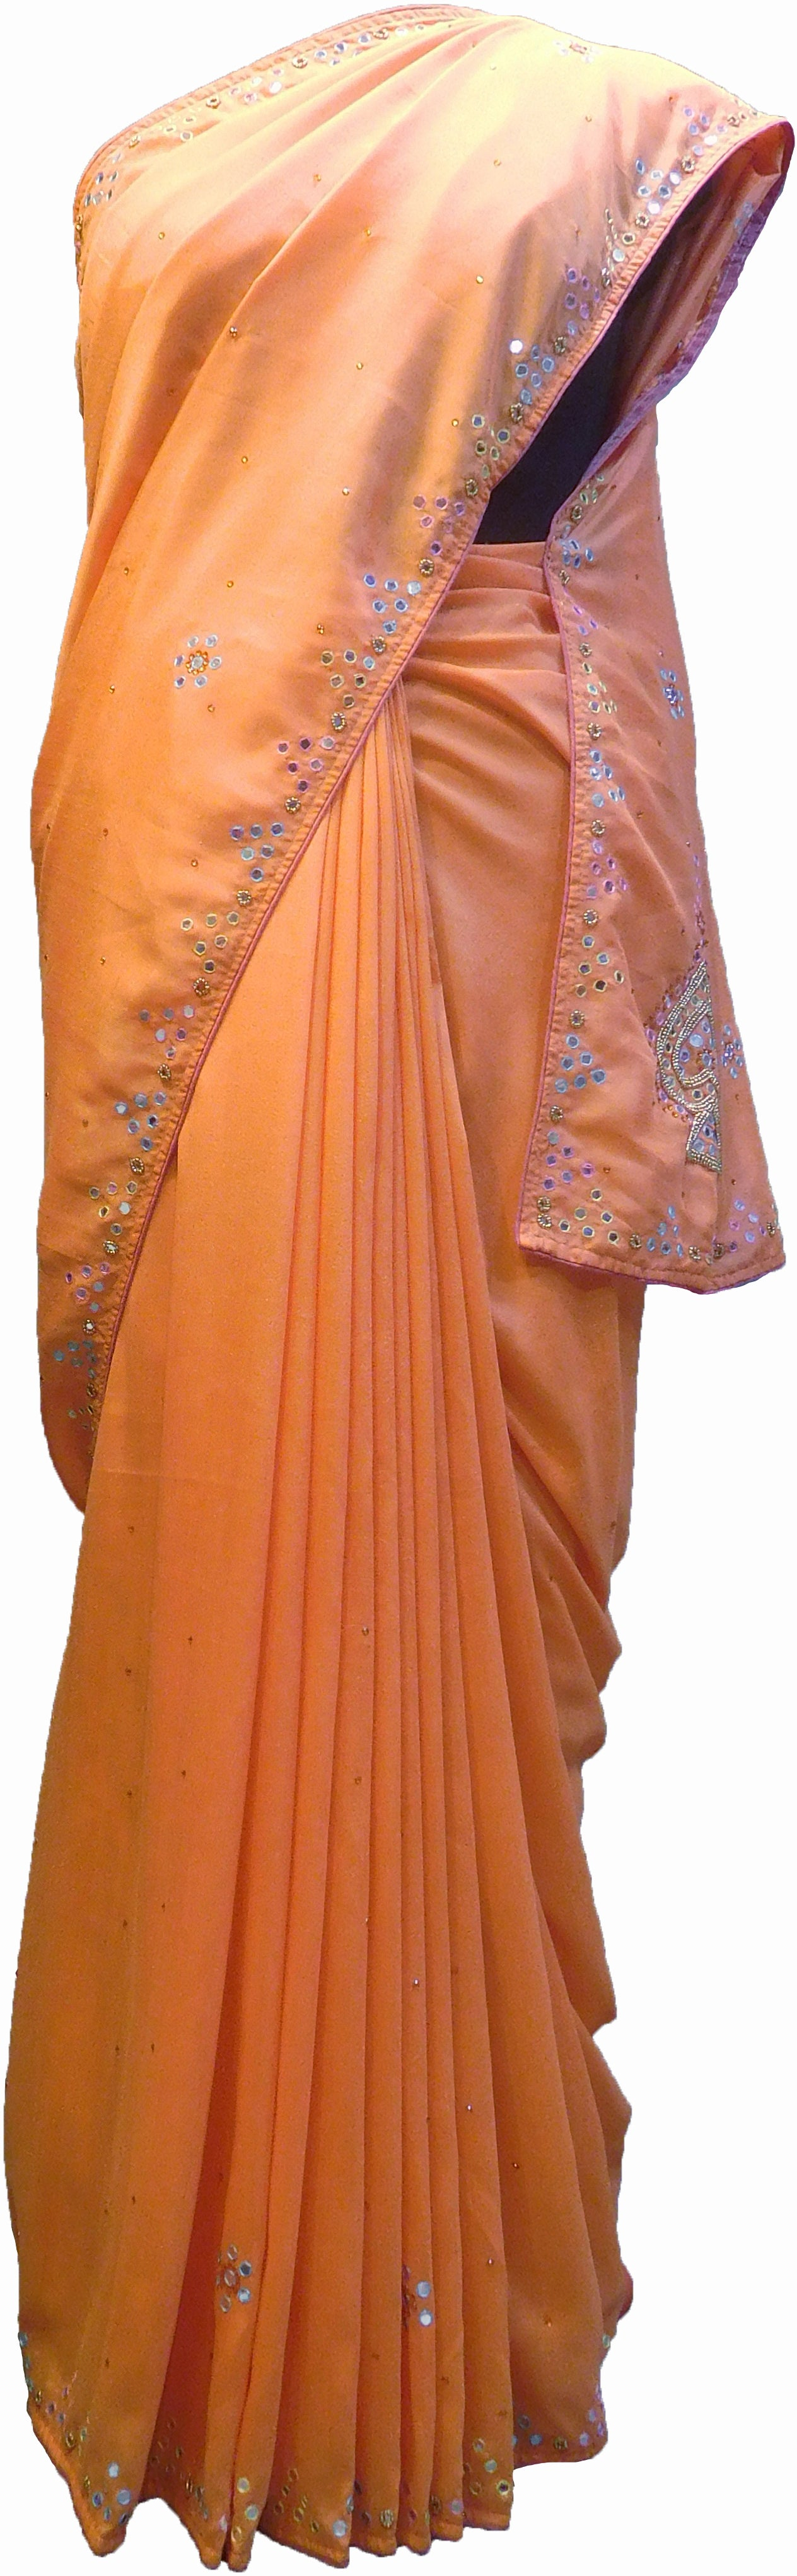 SMSAREE Peach Designer Wedding Partywear Crepe (Rangoli) Stone Beads Thread & Mirror Hand Embroidery Work Bridal Saree Sari With Blouse Piece F212